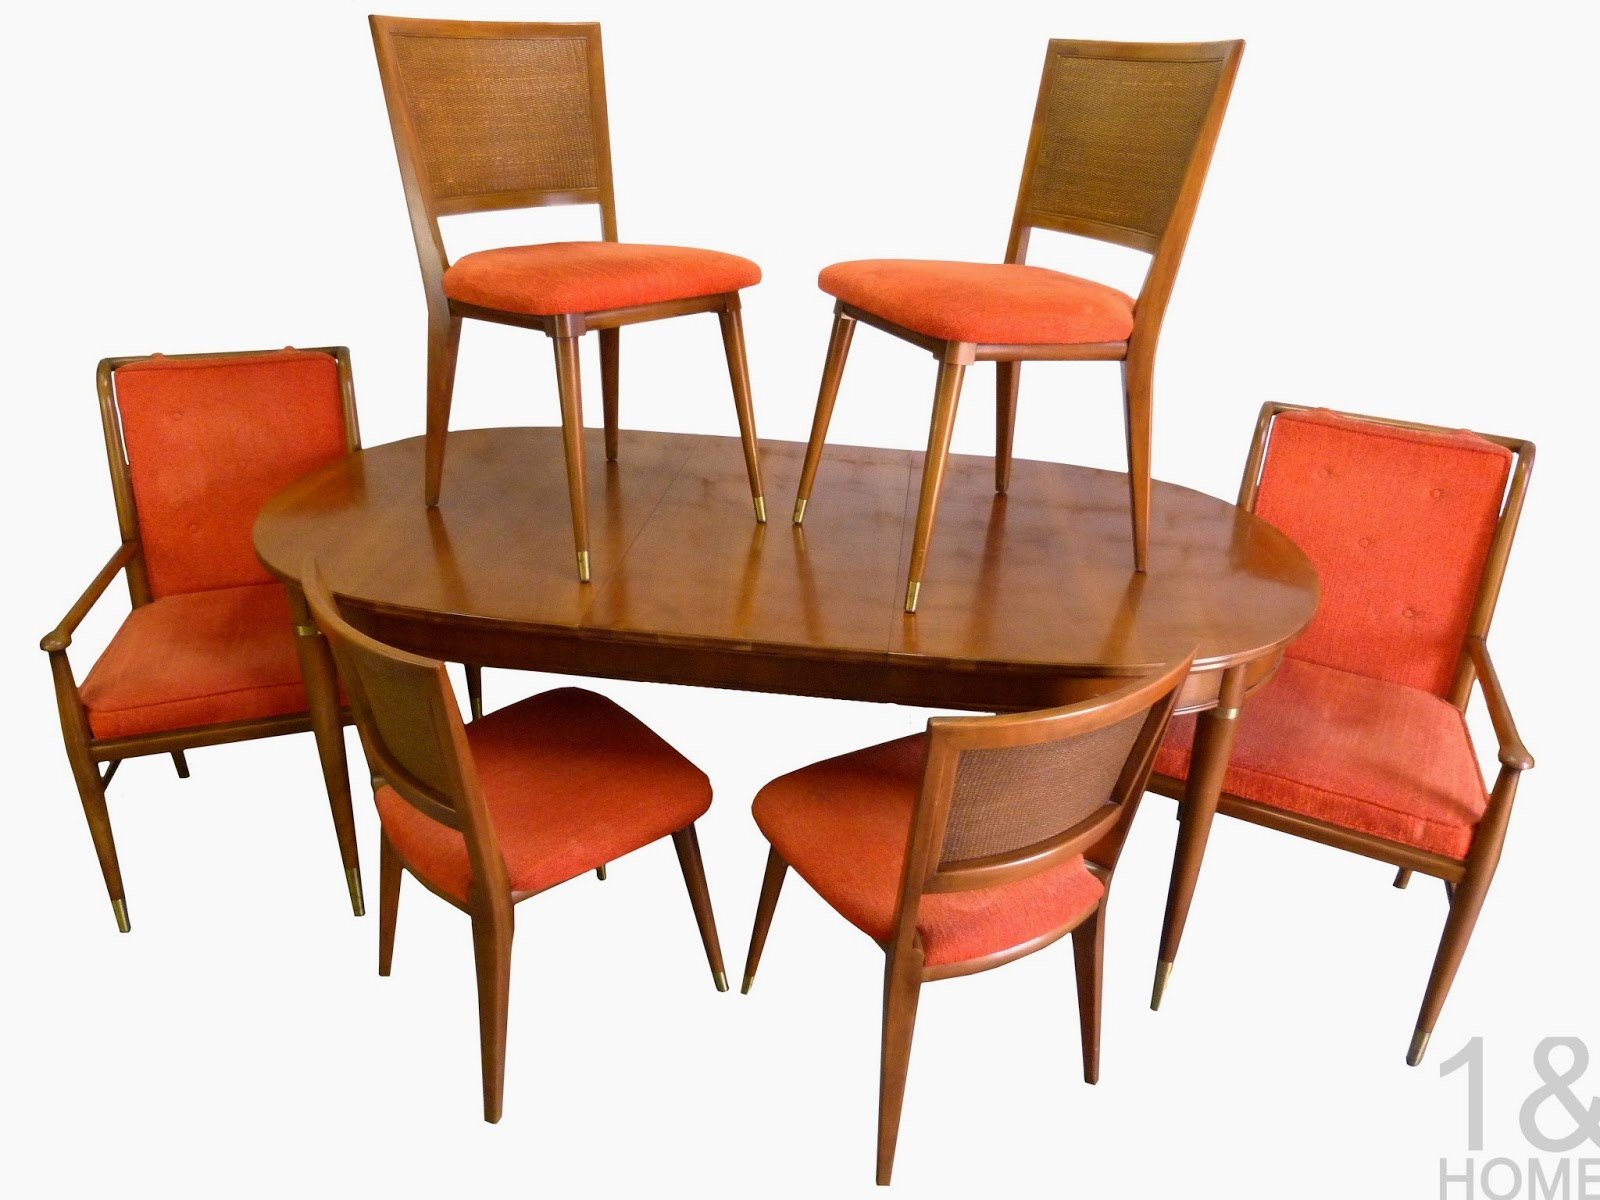 Image Result For Early American Dining Room Table And Chairs